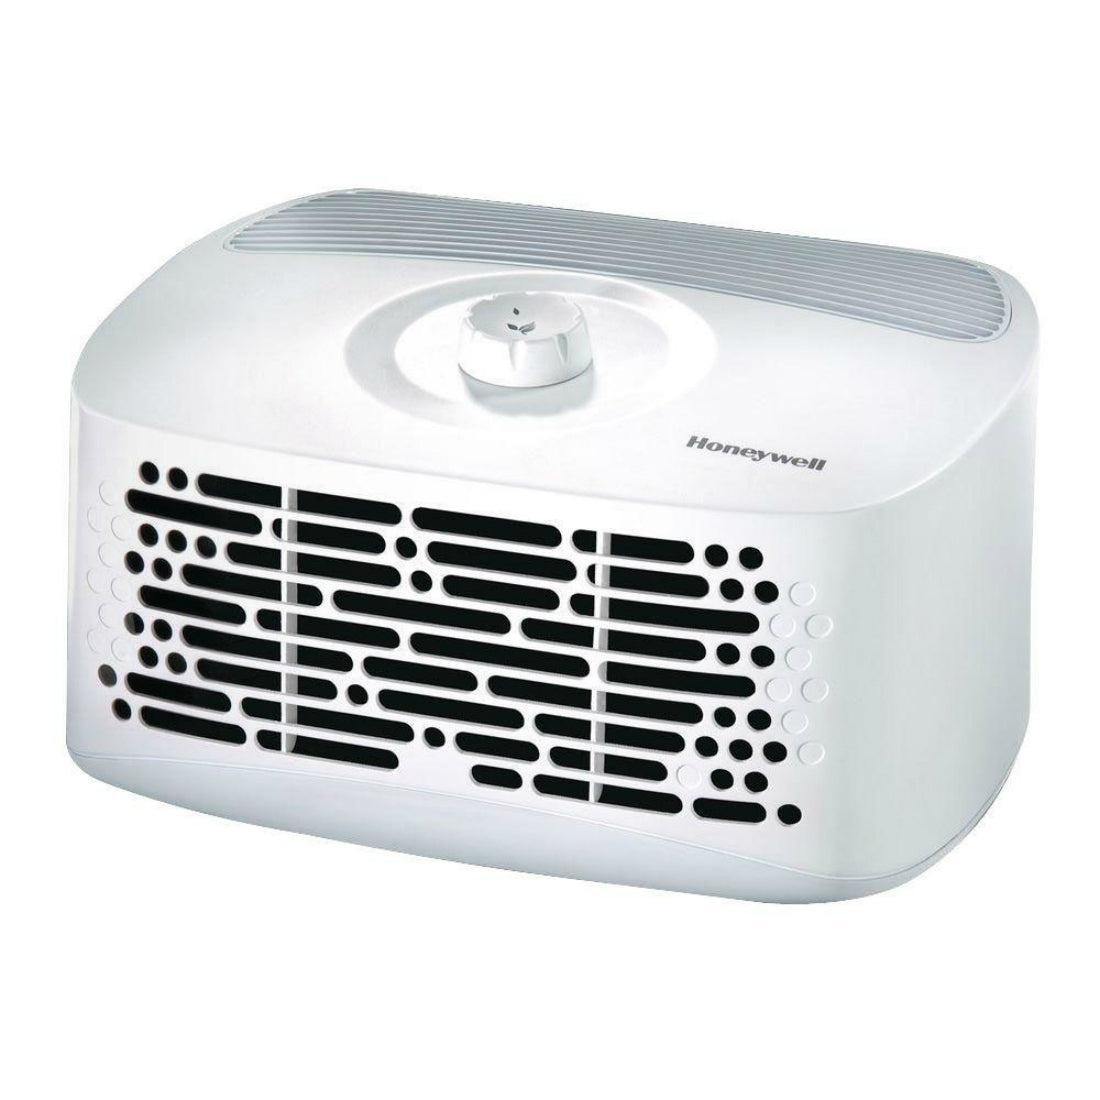 Honeywell HHT270W HEPAClean Portable Tabletop Air Purifier, 3 Cleaning Levels